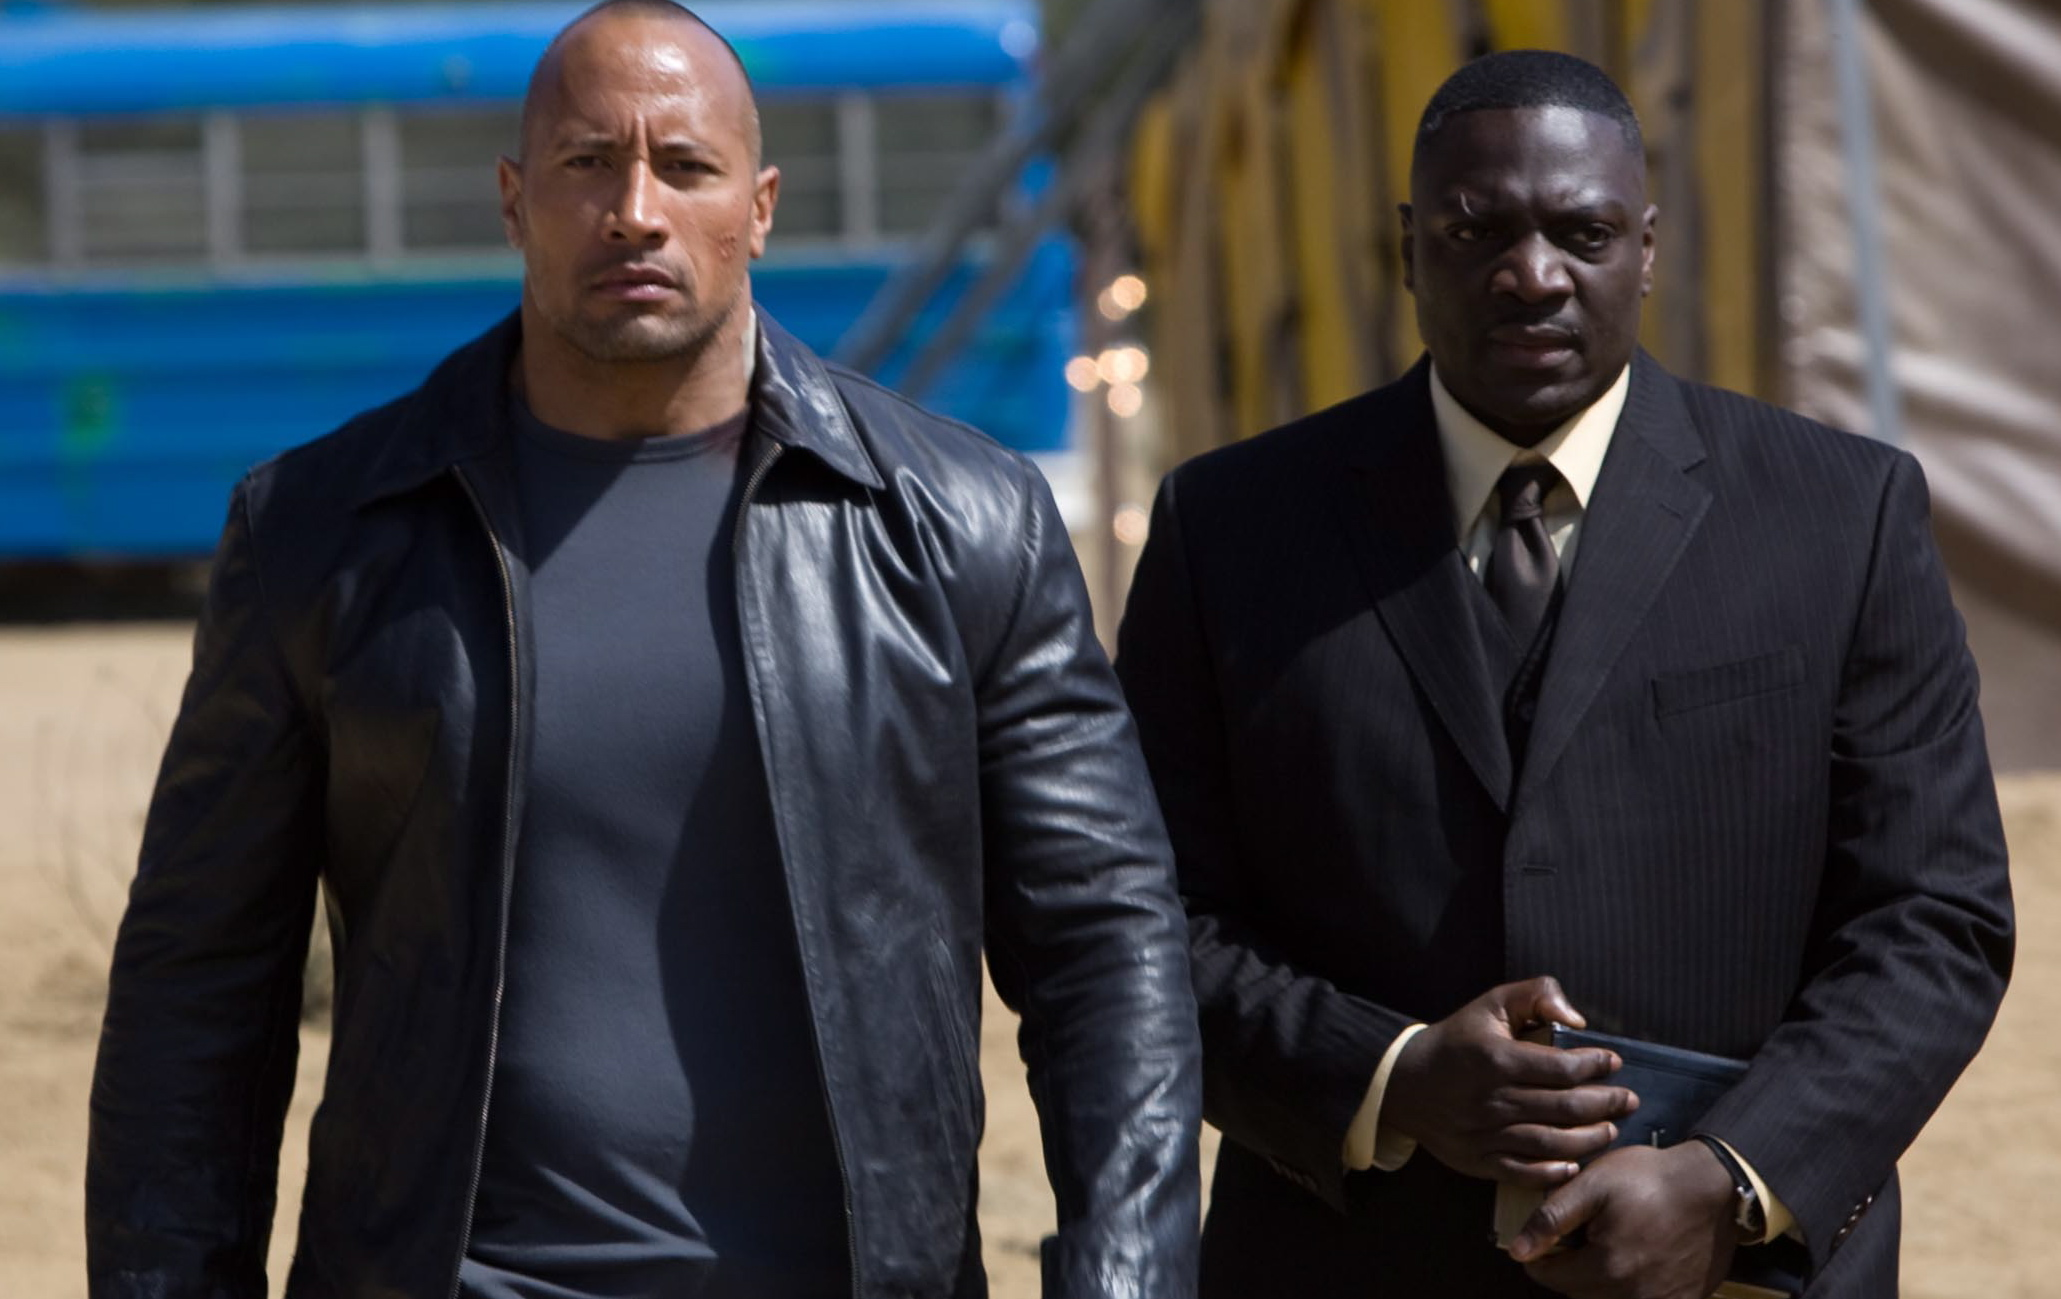 Q&A – Faster's Adewale Akinnuoye-Agbaje on Pranks, Oz, and the Controversial Lost Finale